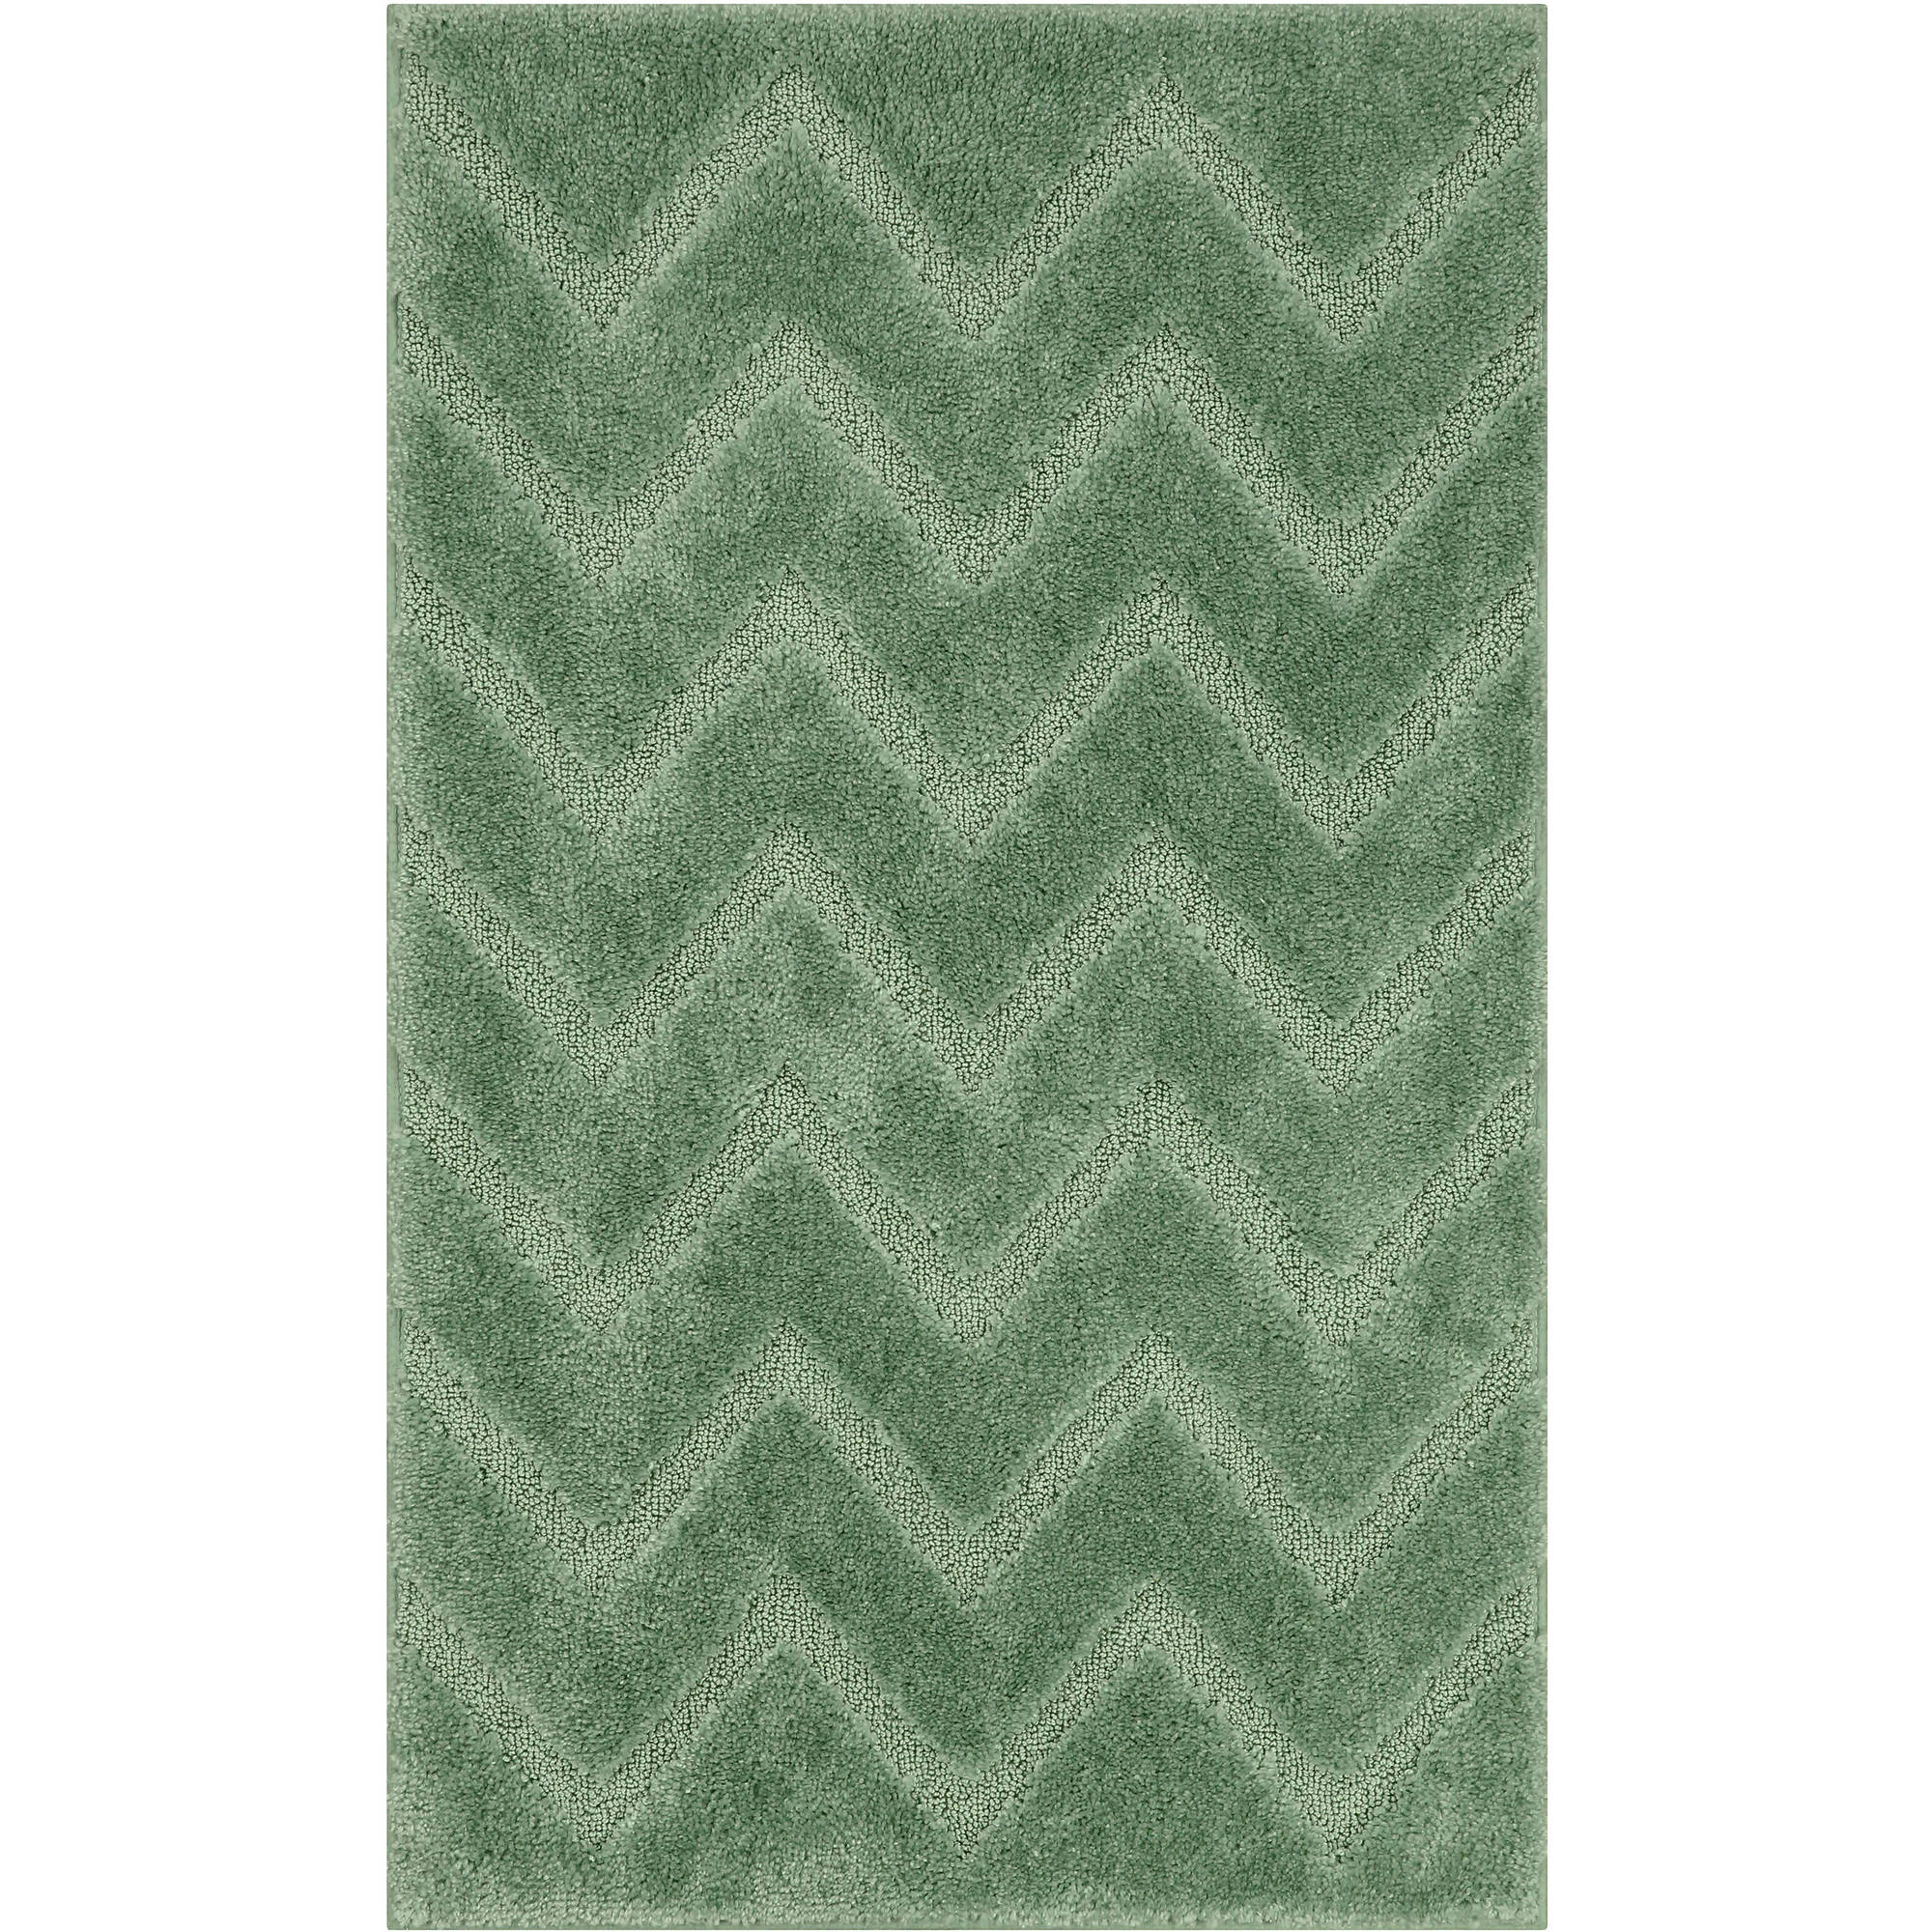 Better Homes and Gardens Extra Soft Chevron Bath Rug